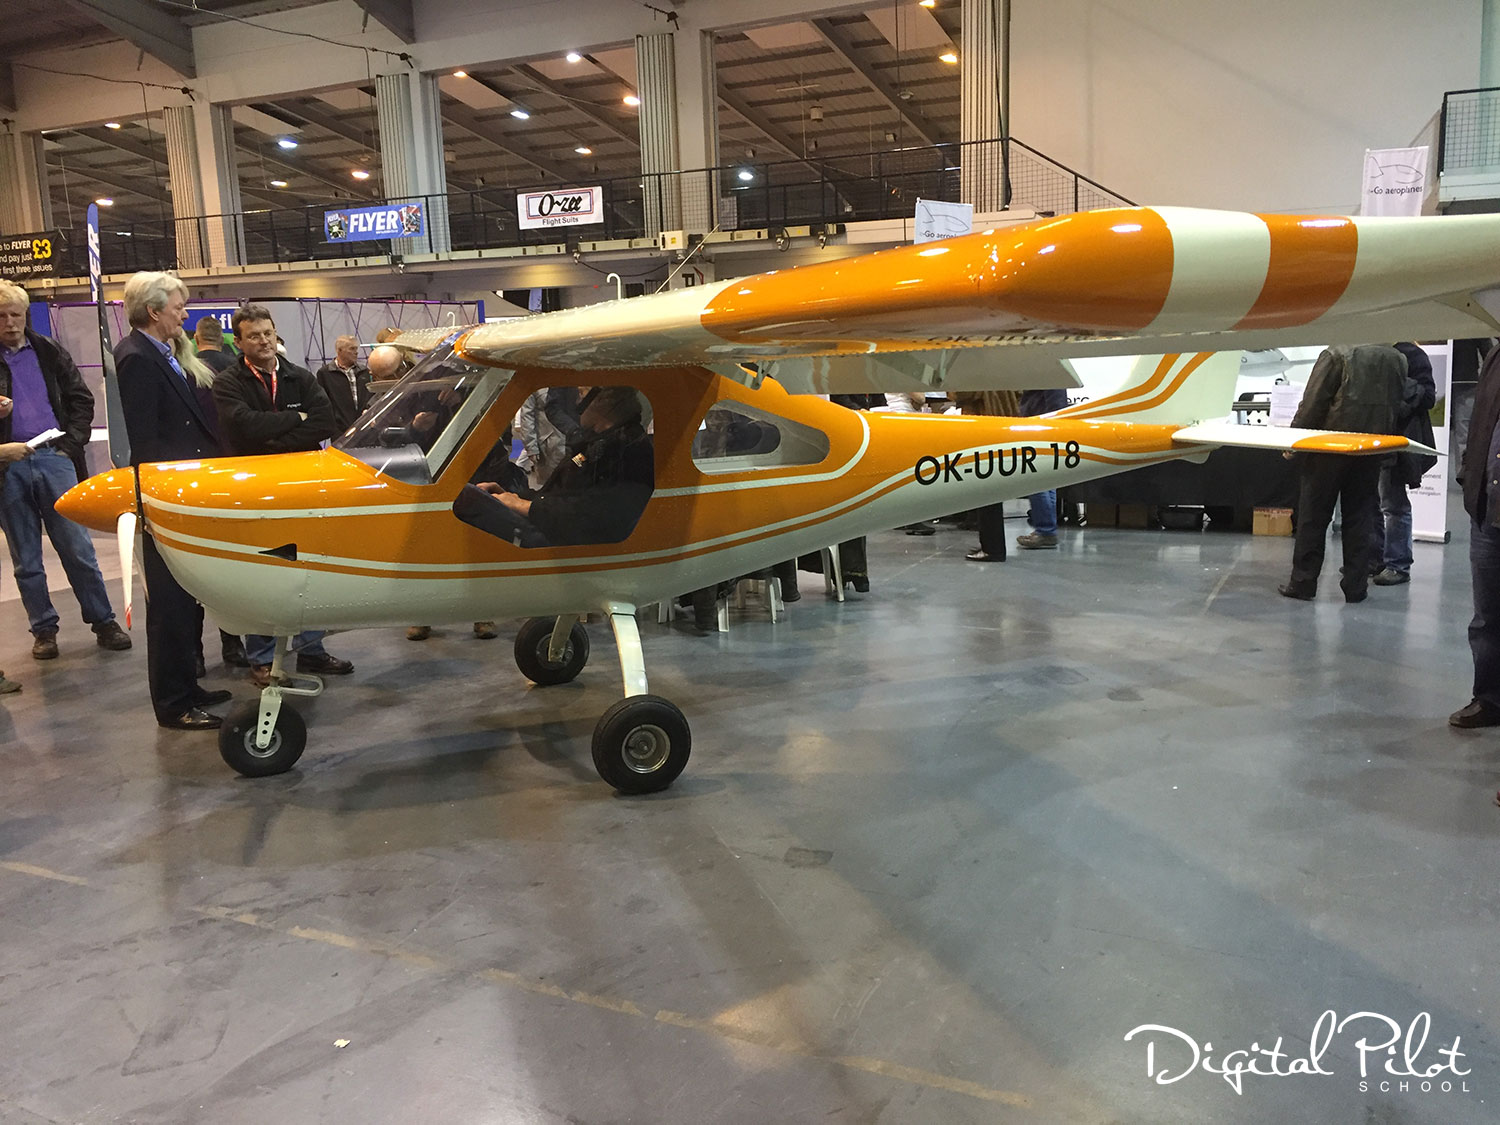 Check out the Tech Pro Merlin SSDR microlight aircraft